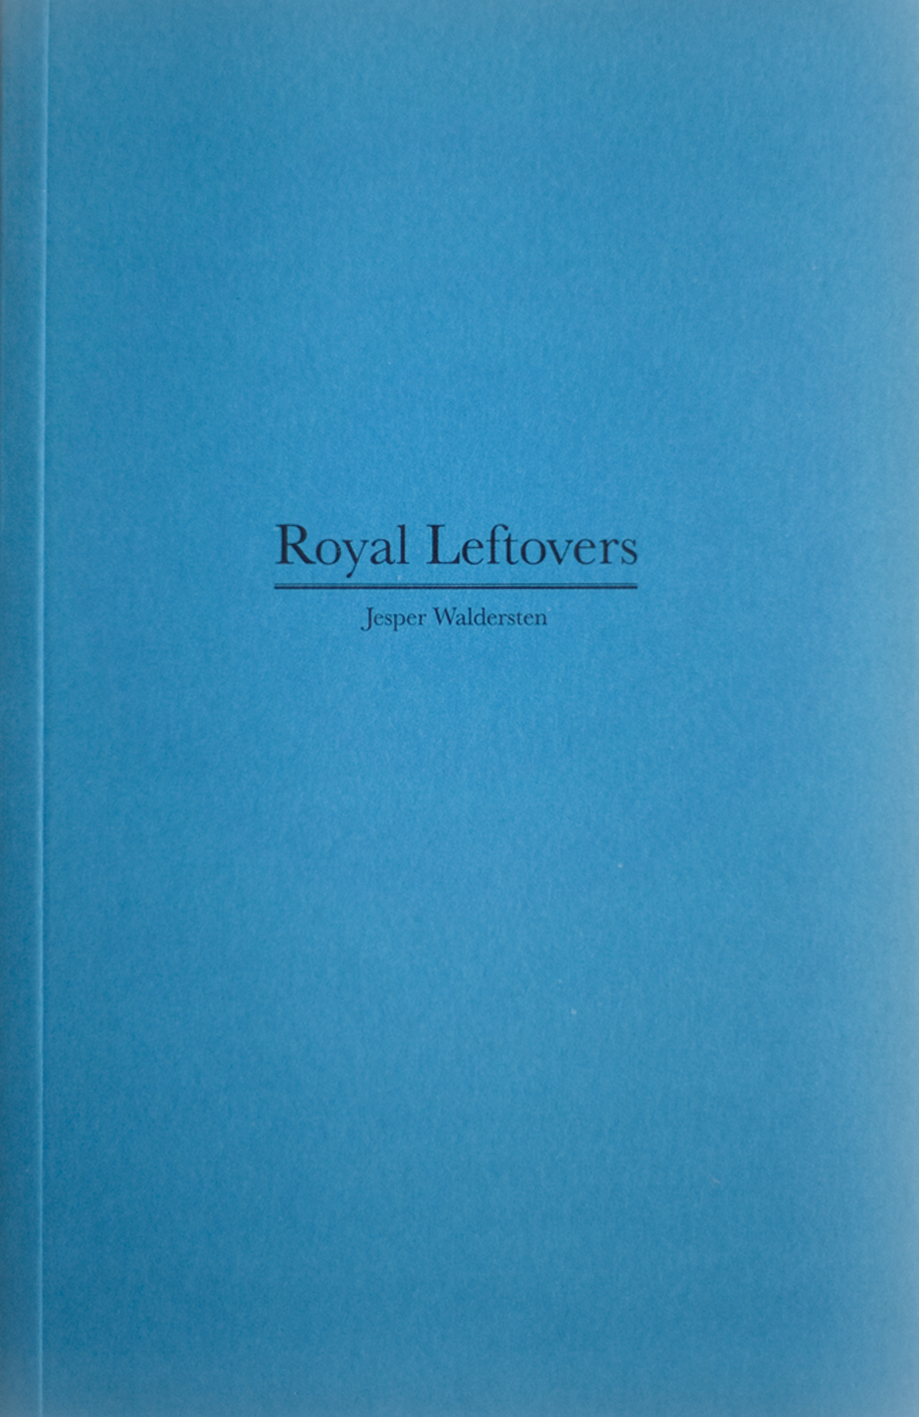 Royal Leftovers